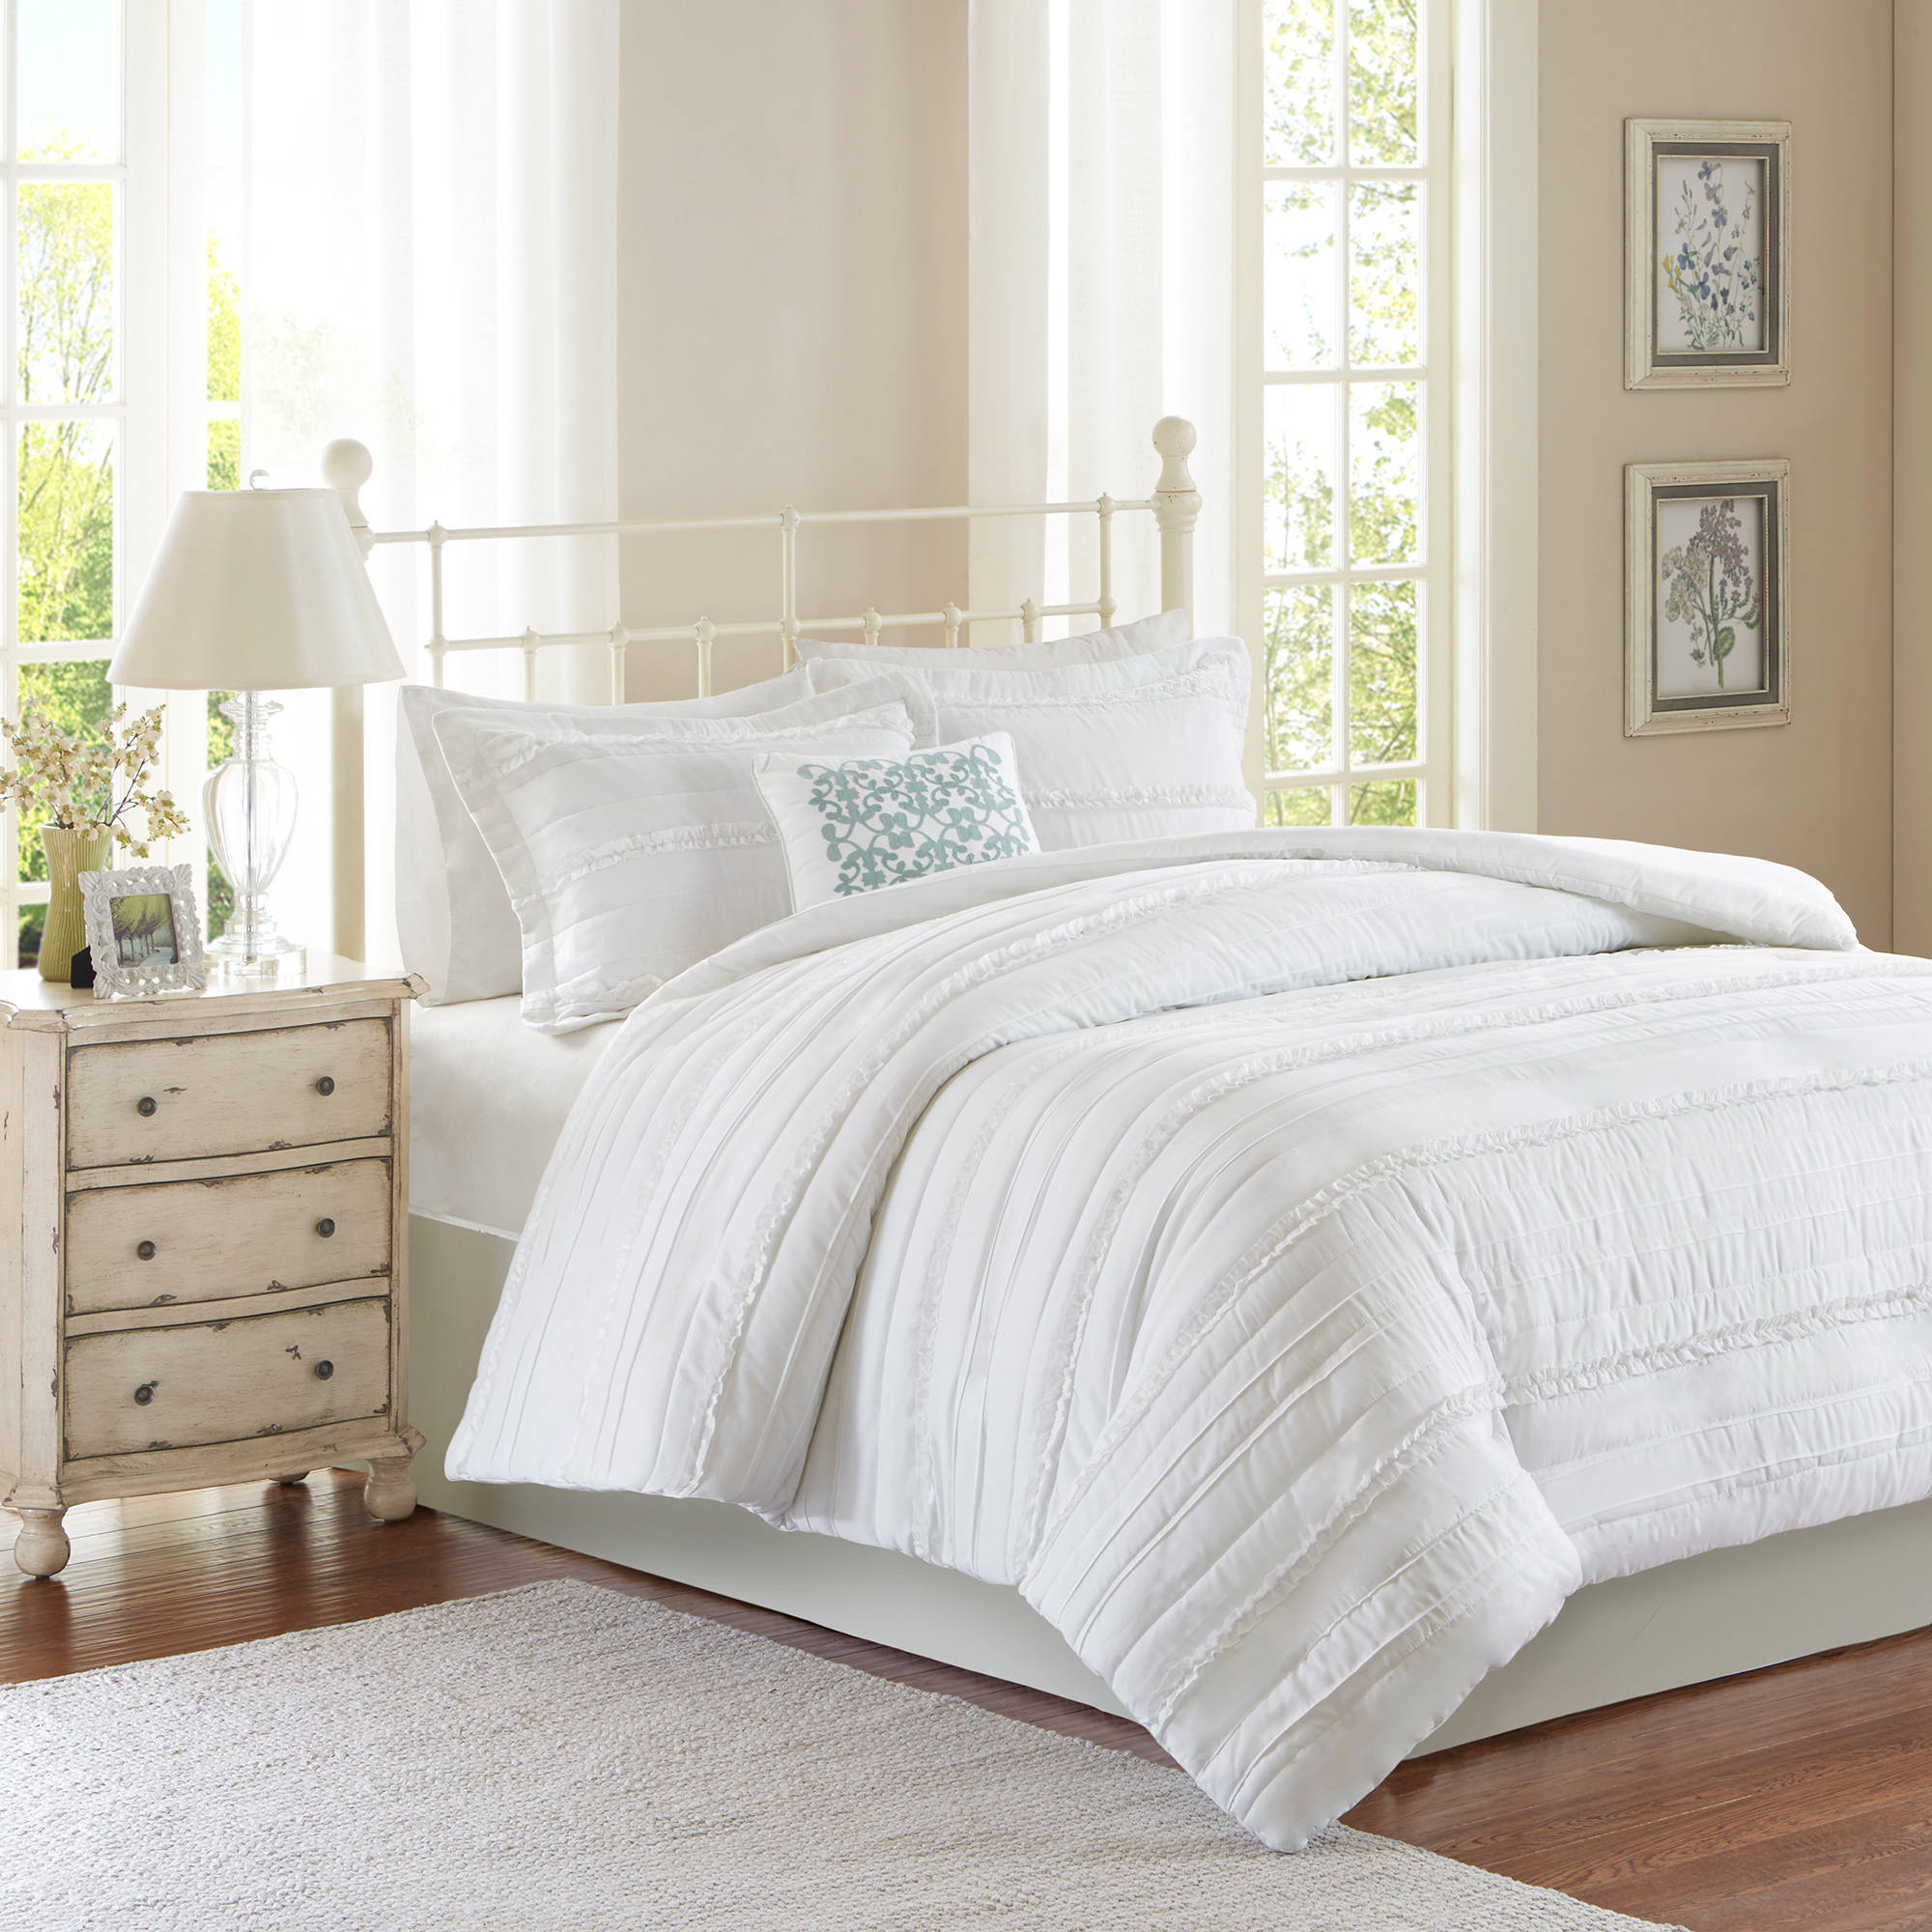 Home Essence Alexis 2-in-1 Duvet Set by E&E Co.